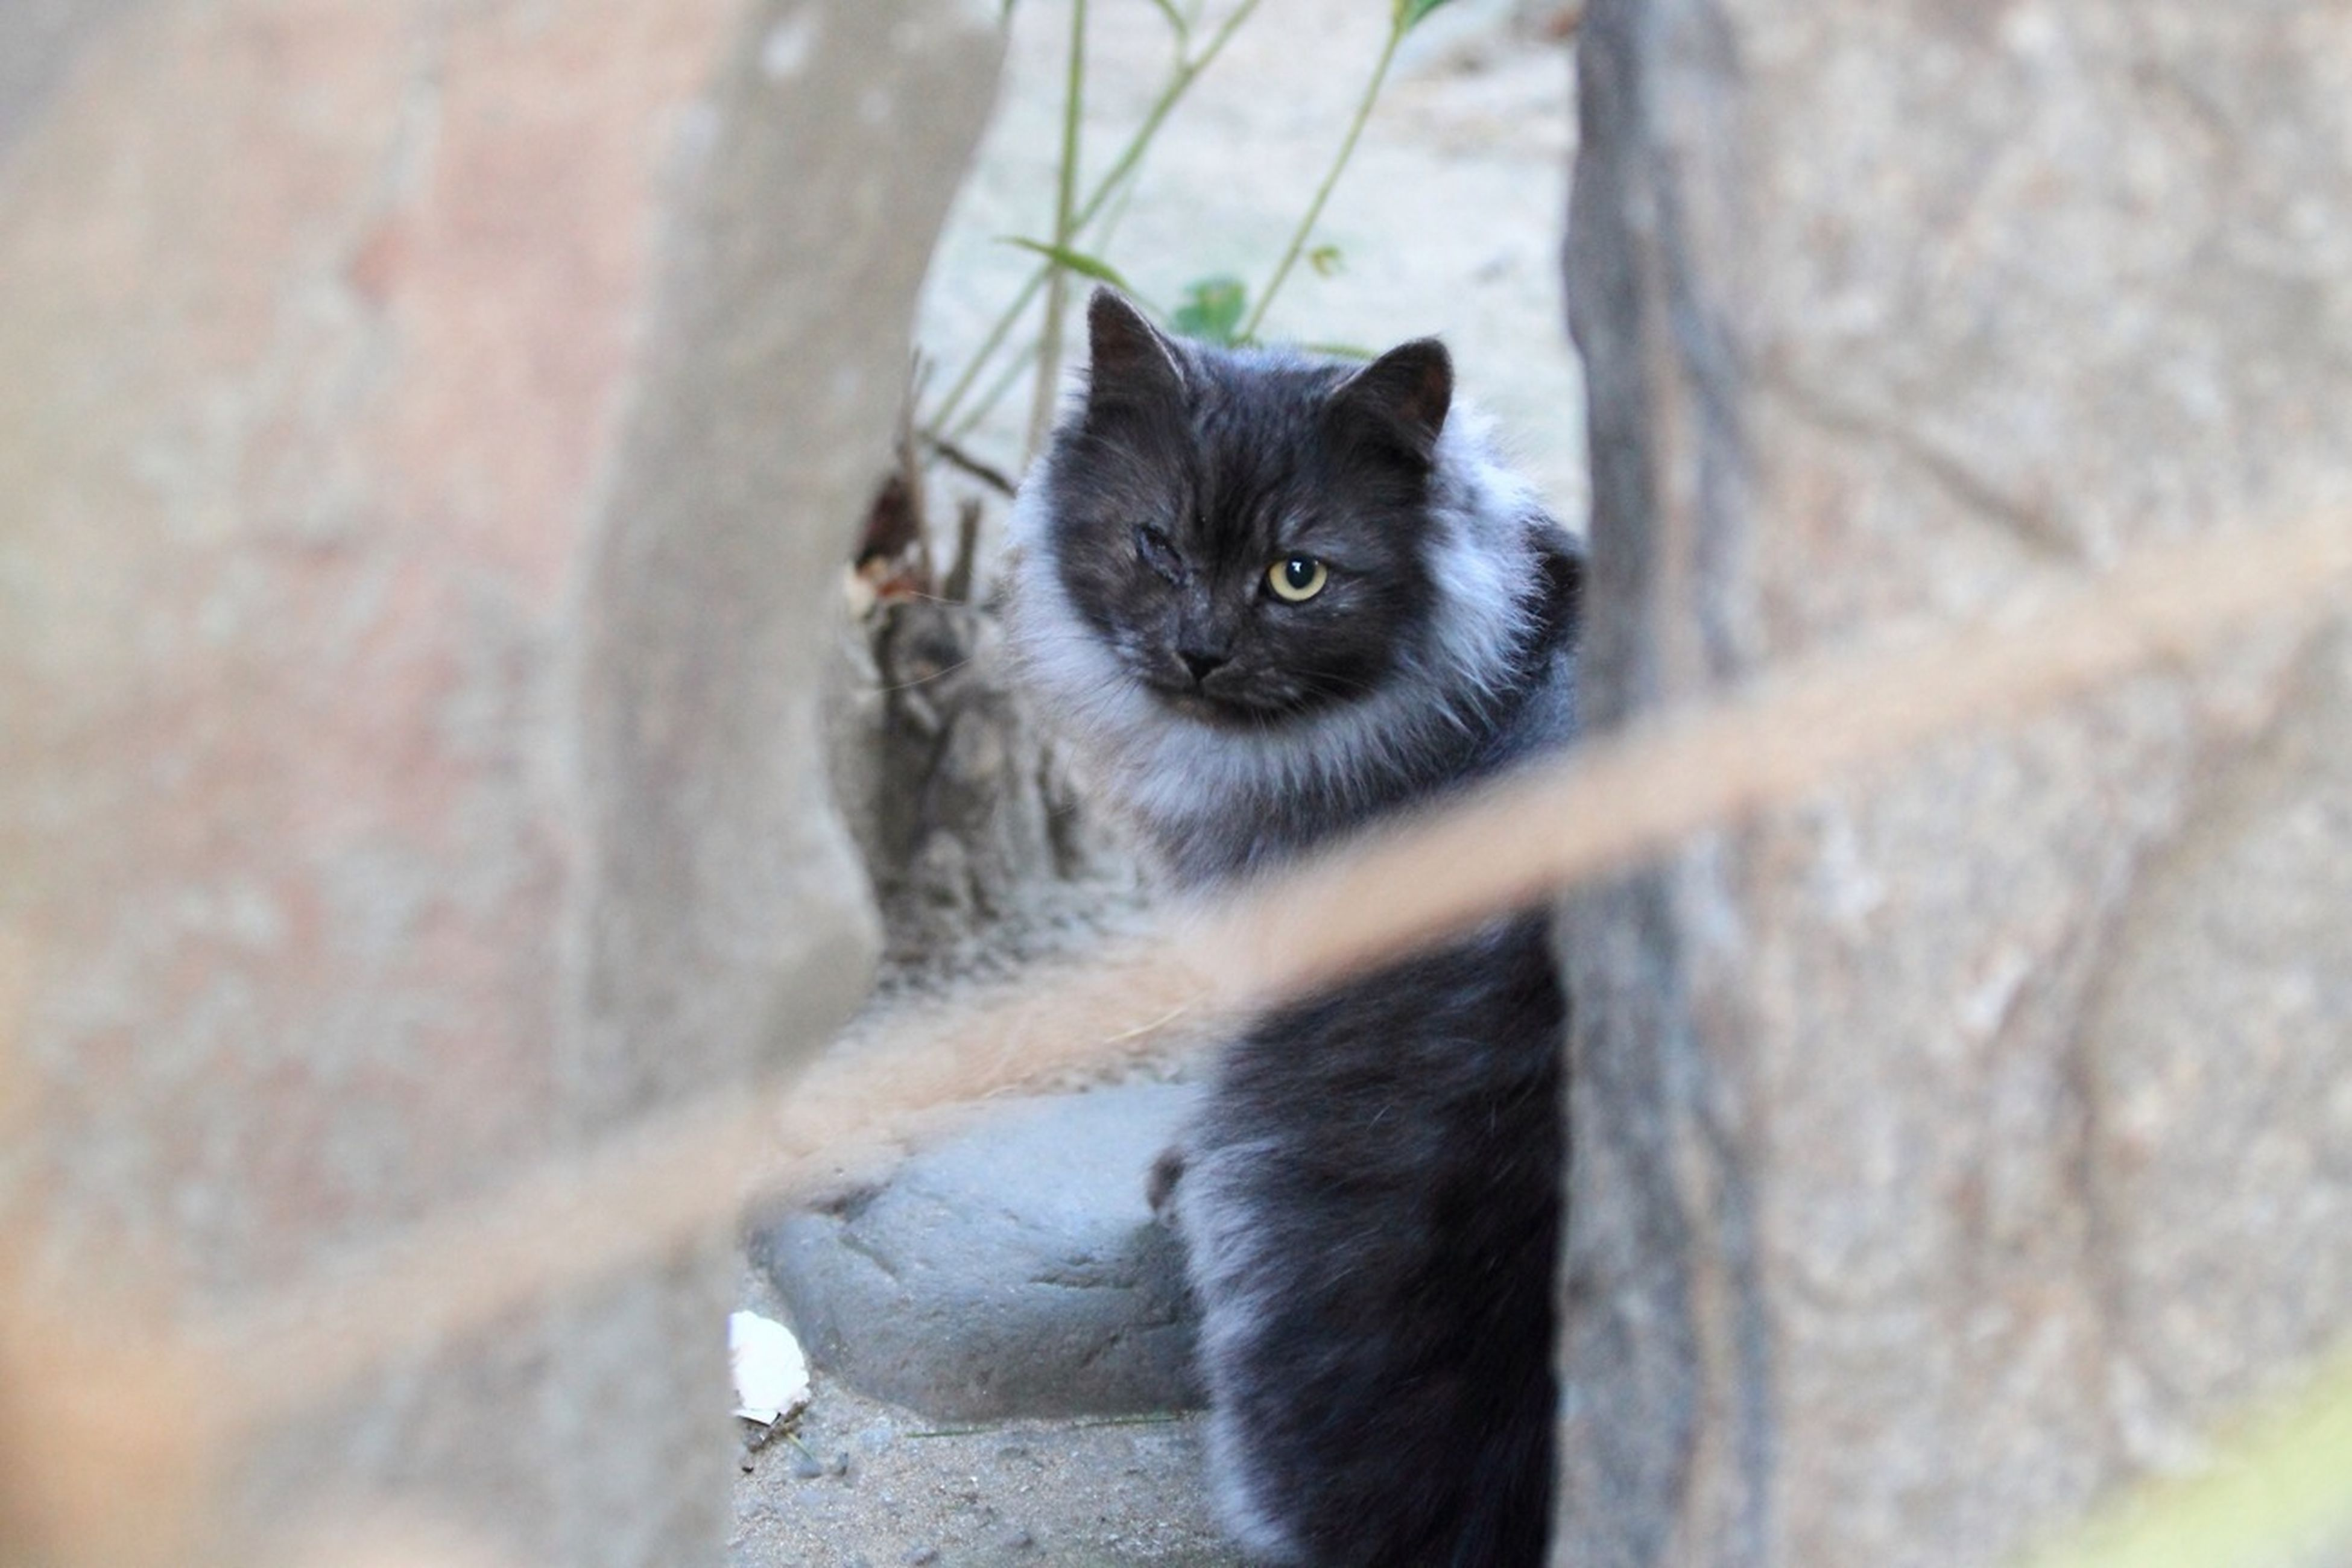 The Stray Cat Which Lives In The Shrine. He Has Lost One Eye. But He Is Strongly Alive.②